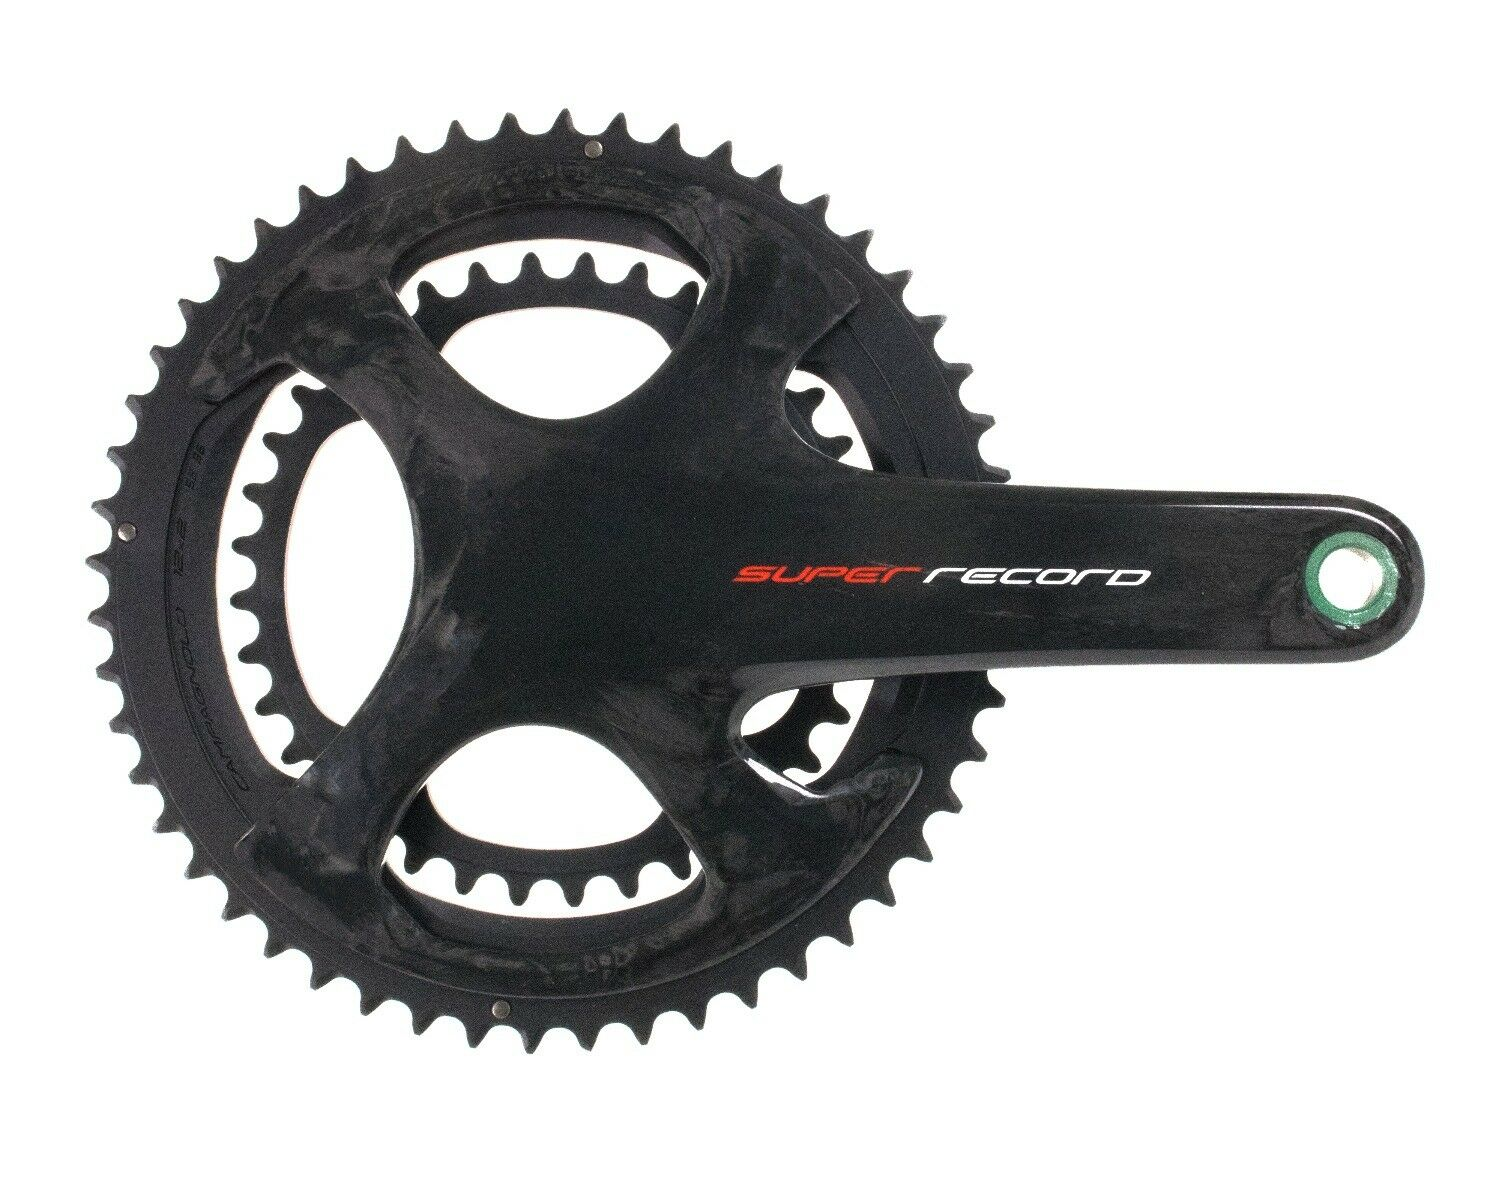 Campagnolo SUPER RECORD UT TI Carbon 12s crankset 172,5 mm 3652